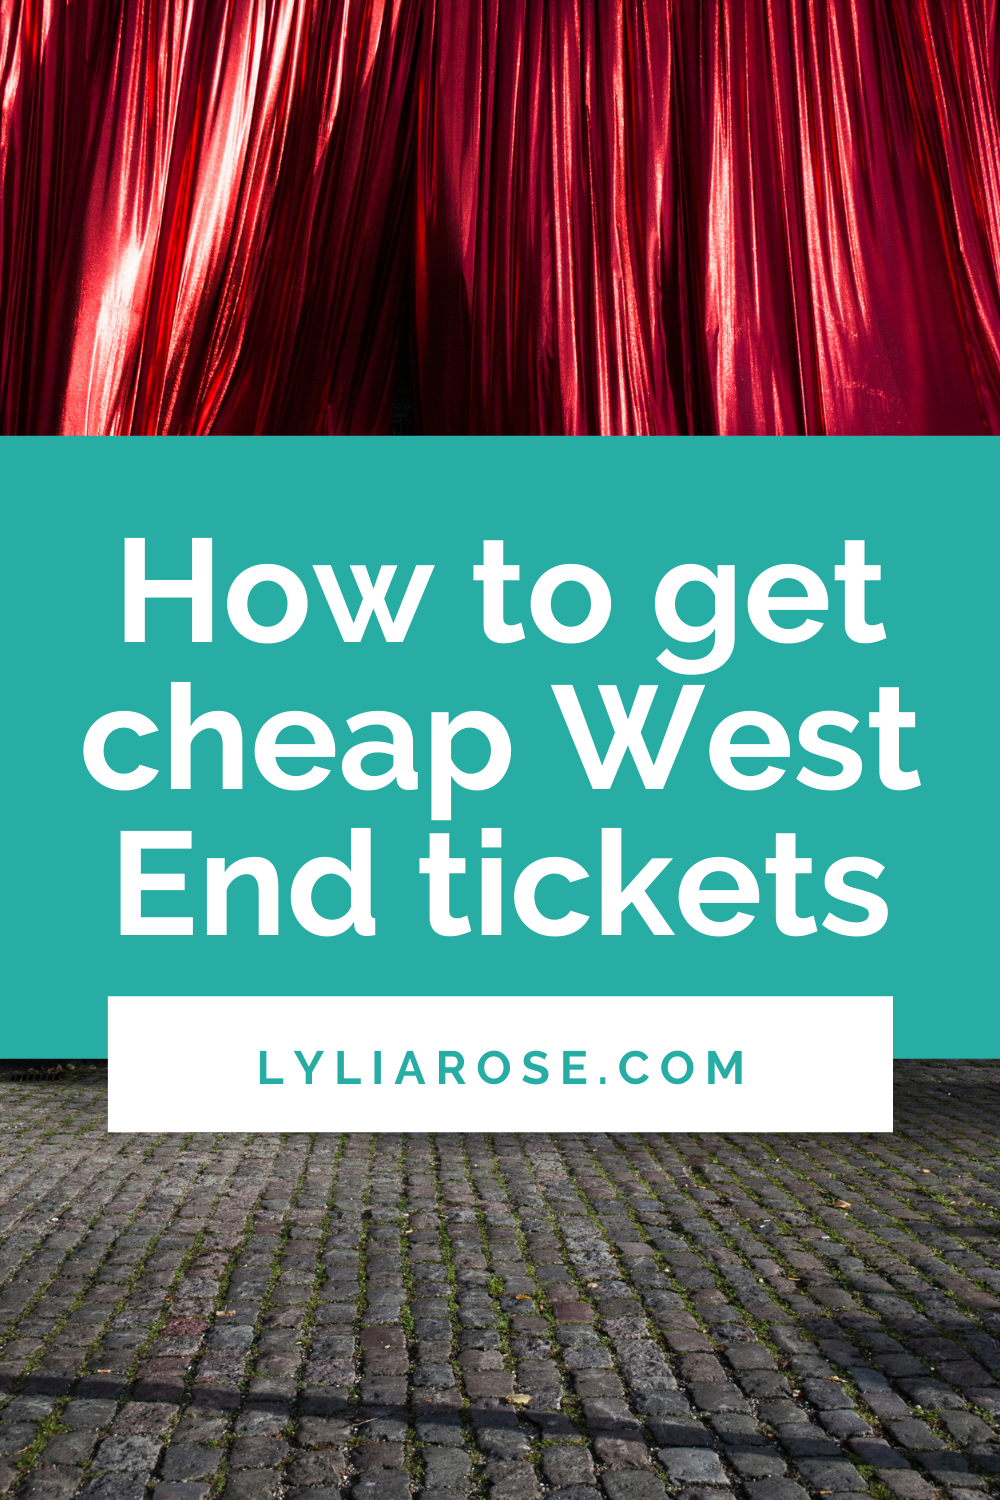 How to get cheap West End tickets (1)